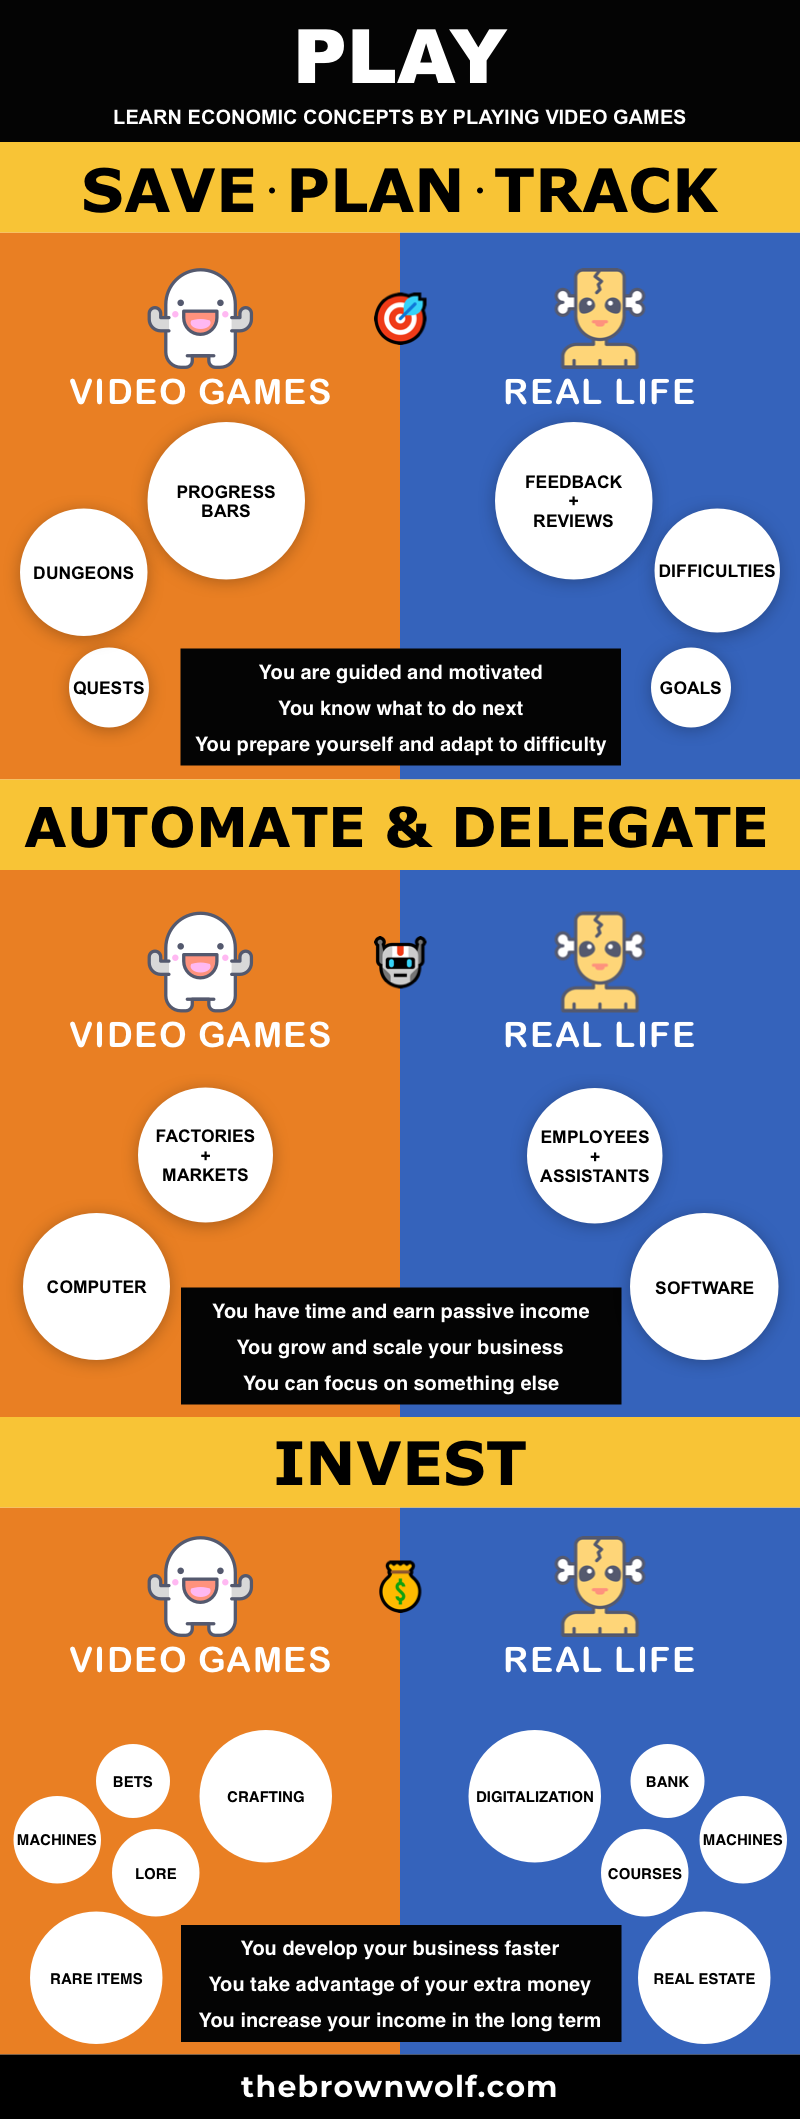 Infographic - Learn 3 Economic Concepts by Playing Video Games